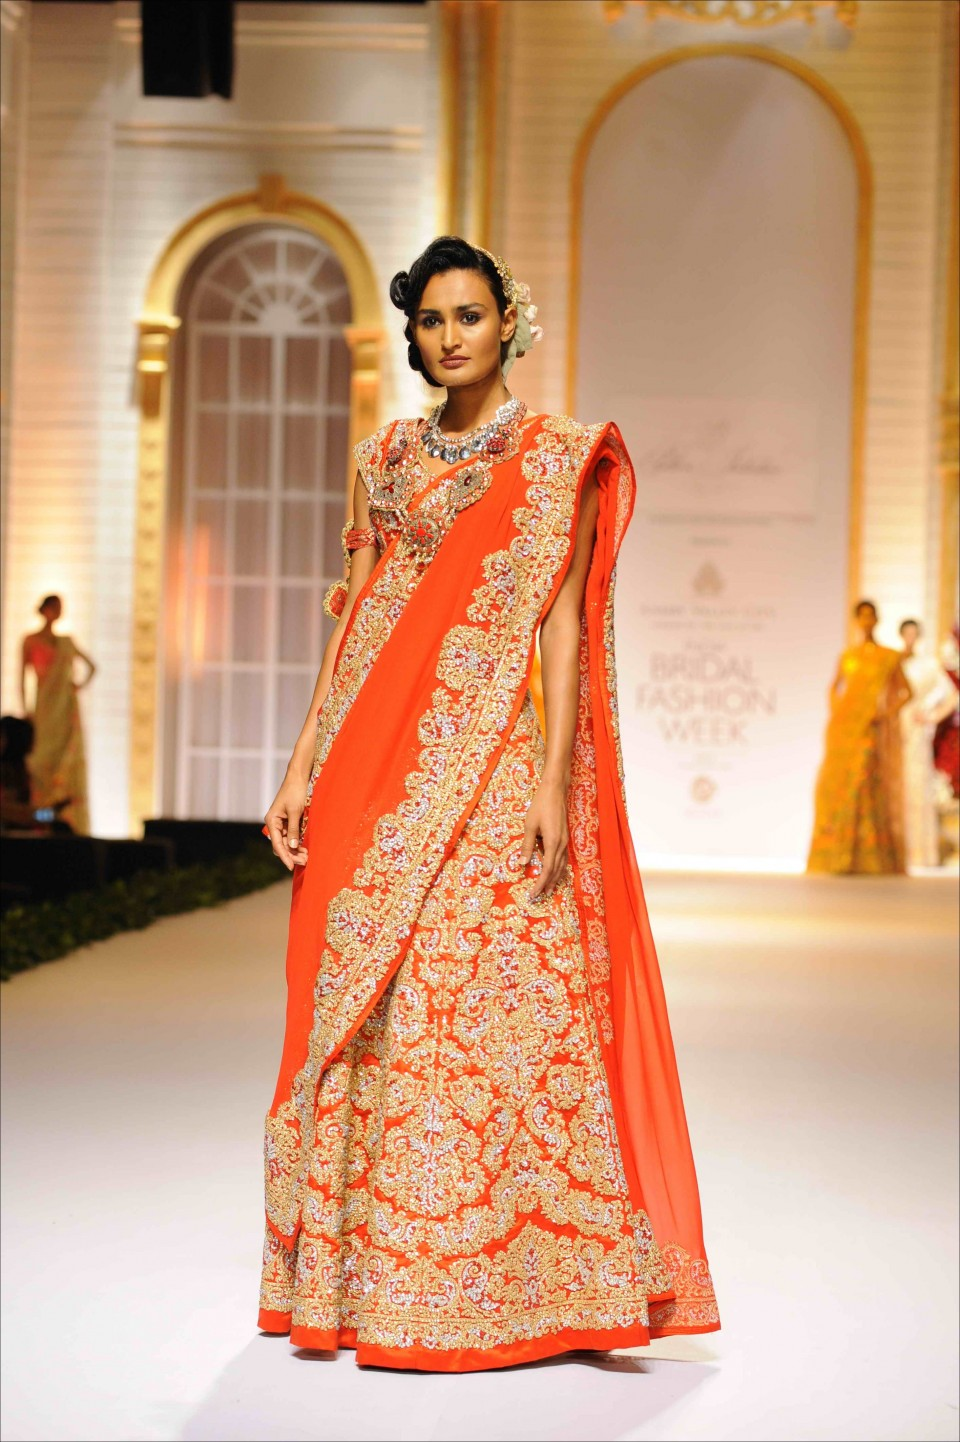 NEETA-LULLA-INDIAN-BRIDAL-DRESSES-COLLECTION-1-e1459523337475.jpg